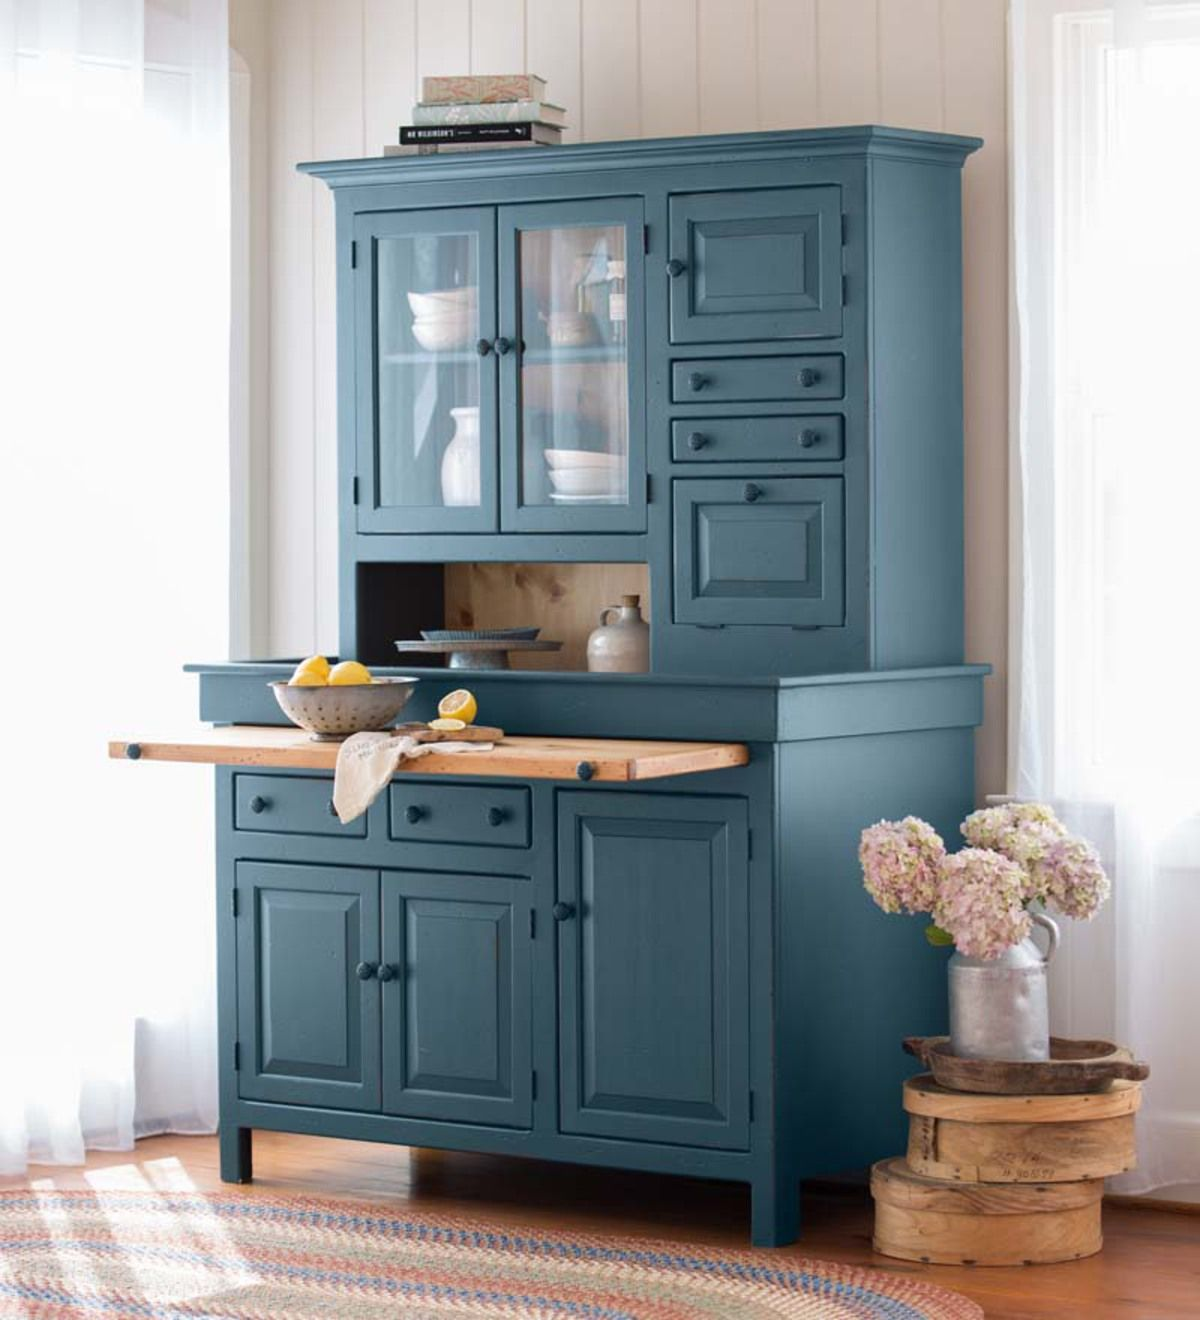 Our American Made Conestoga Cupboard Is Handcrafted With Handy Shelves For Staples And Kitchen Supplies Instead Of In 2020 Cupboard Cupboard Storage Painted Cupboards